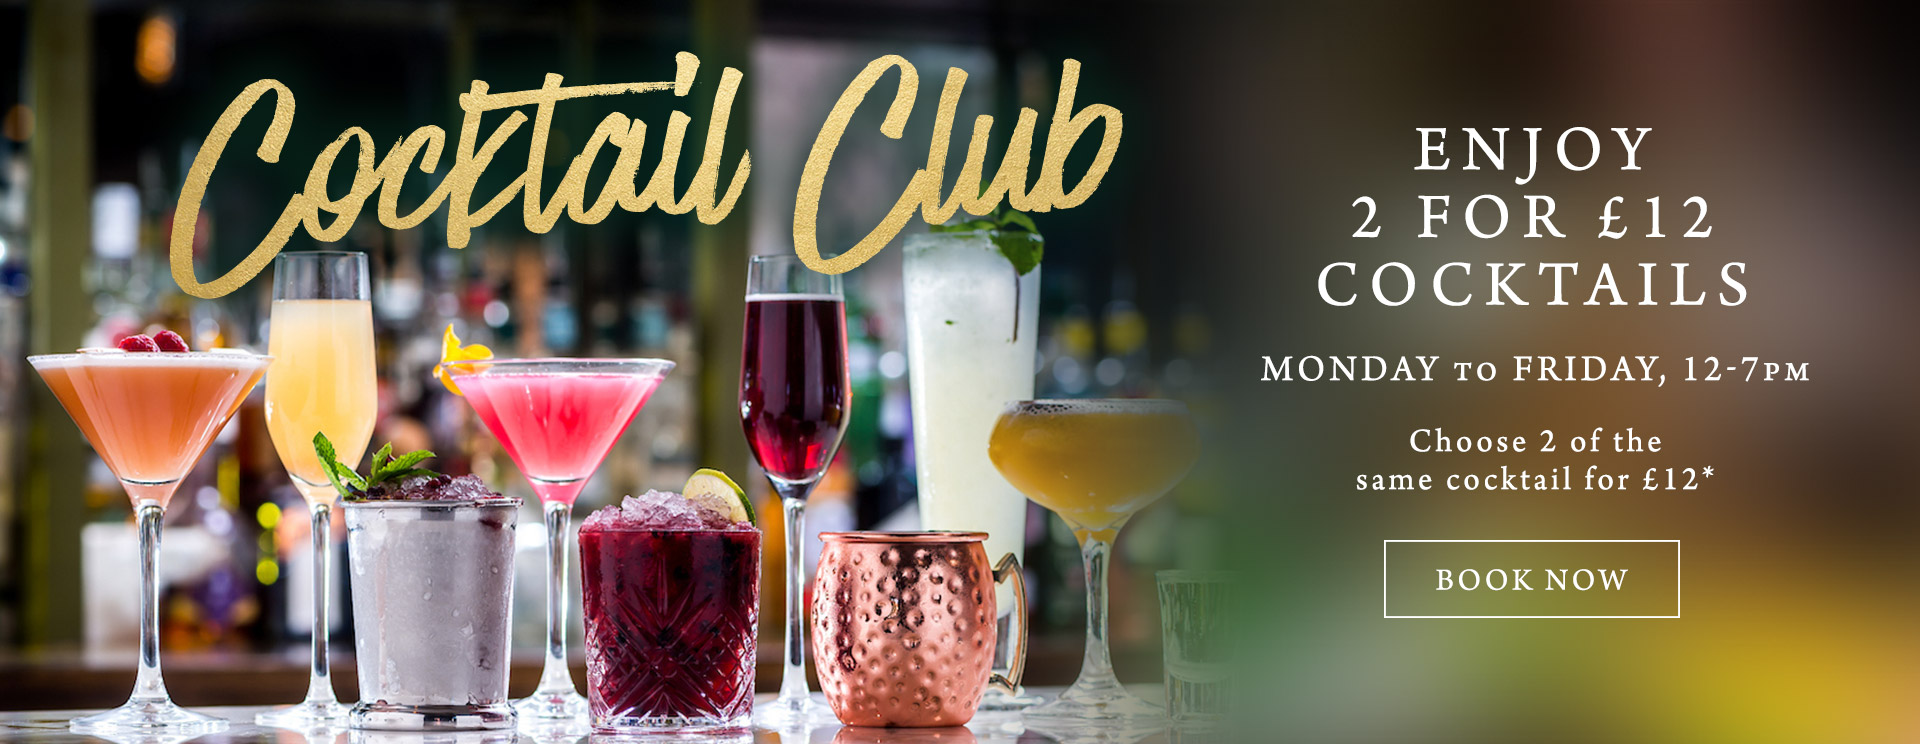 2 for £12 cocktails at The King's Arms